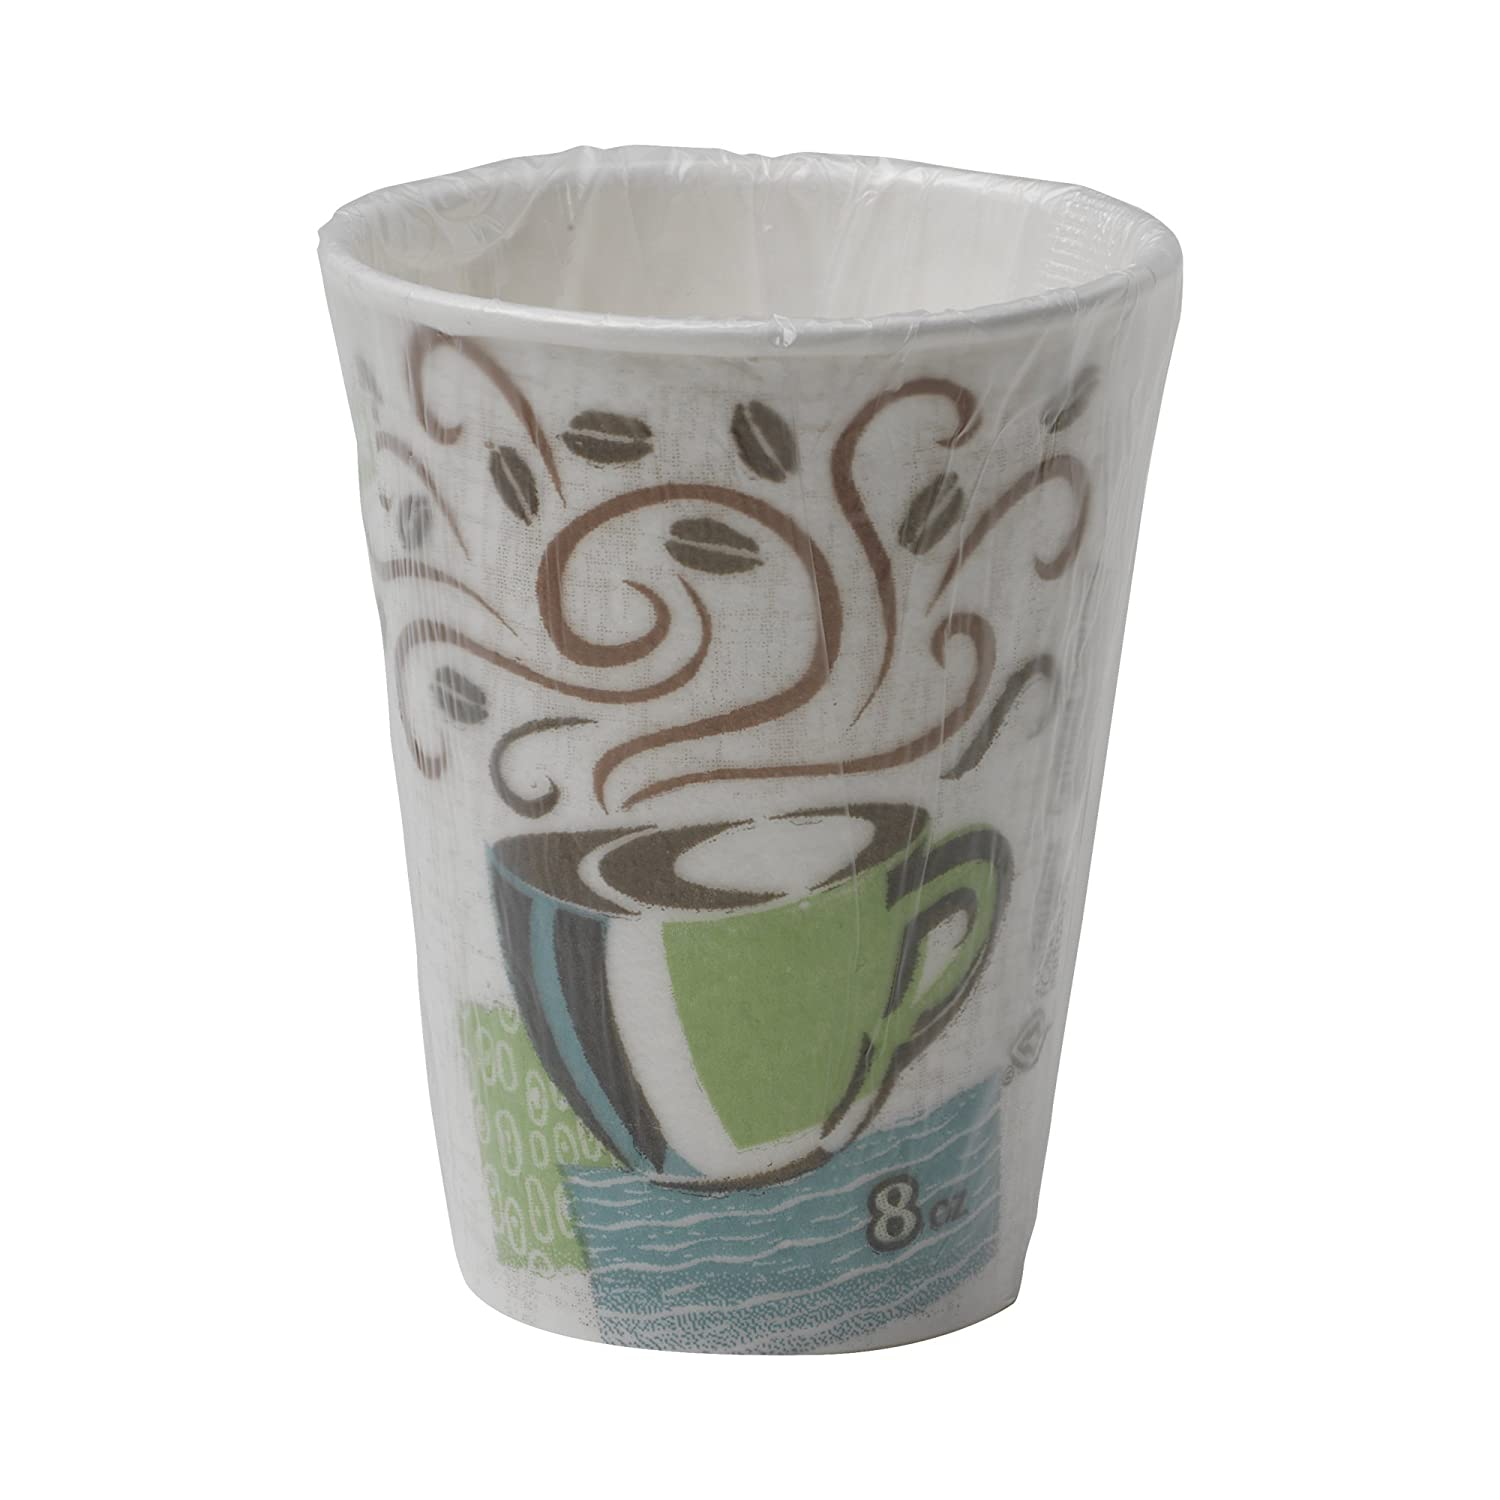 Dixie PerfecTouch, 5338CDWR, Coffee Haze, 8 oz., Individually Wrapped Insulated Paper Hot Cup by GP PRO (Georgia-Pacific)(Case of 1,000 Cups), Coffee Haze Design